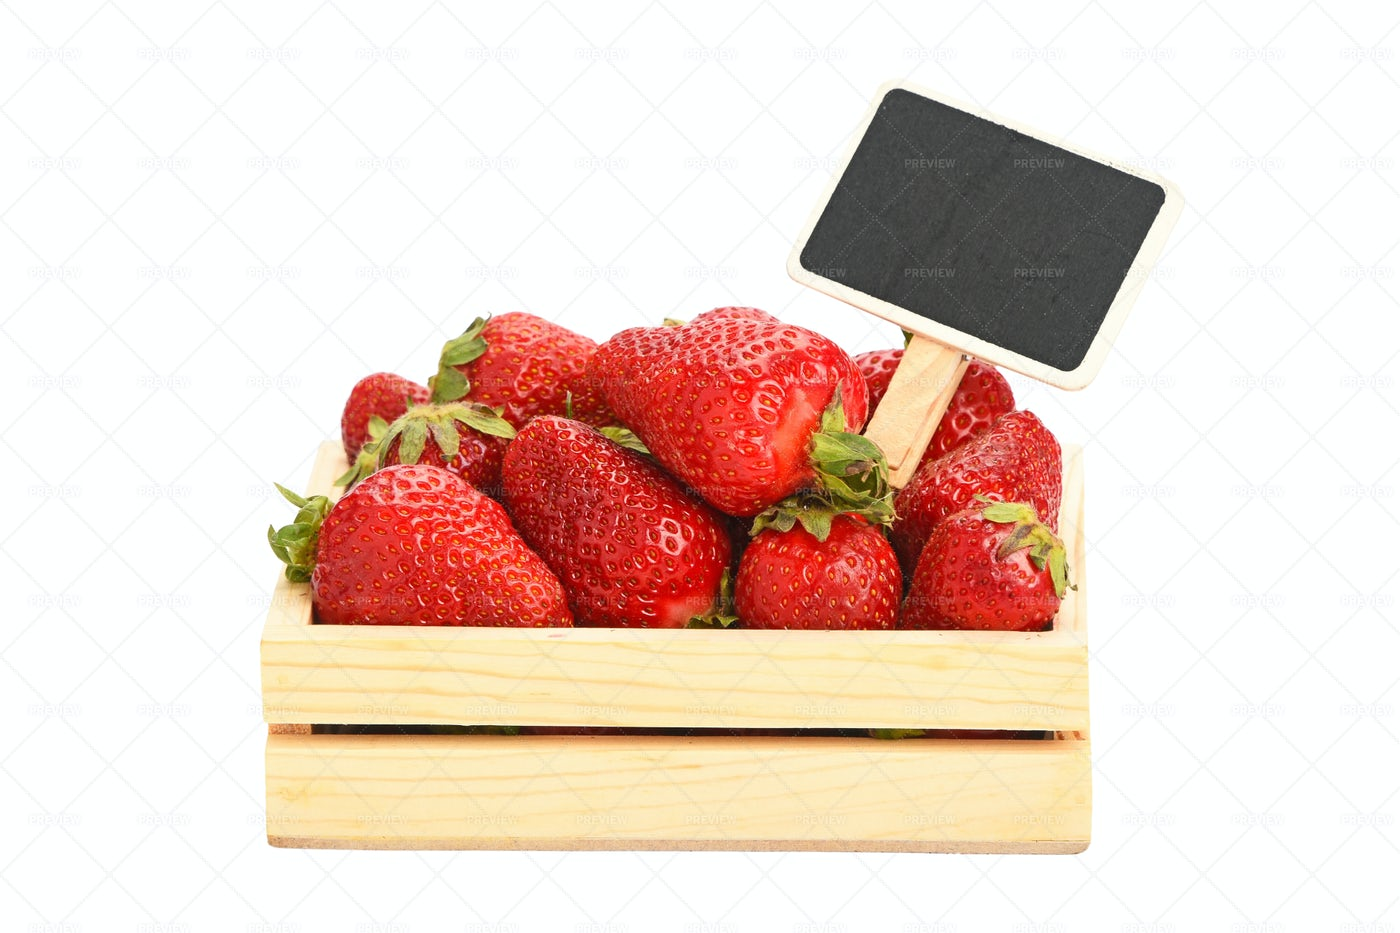 Strawberries In A Wooden Box: Stock Photos